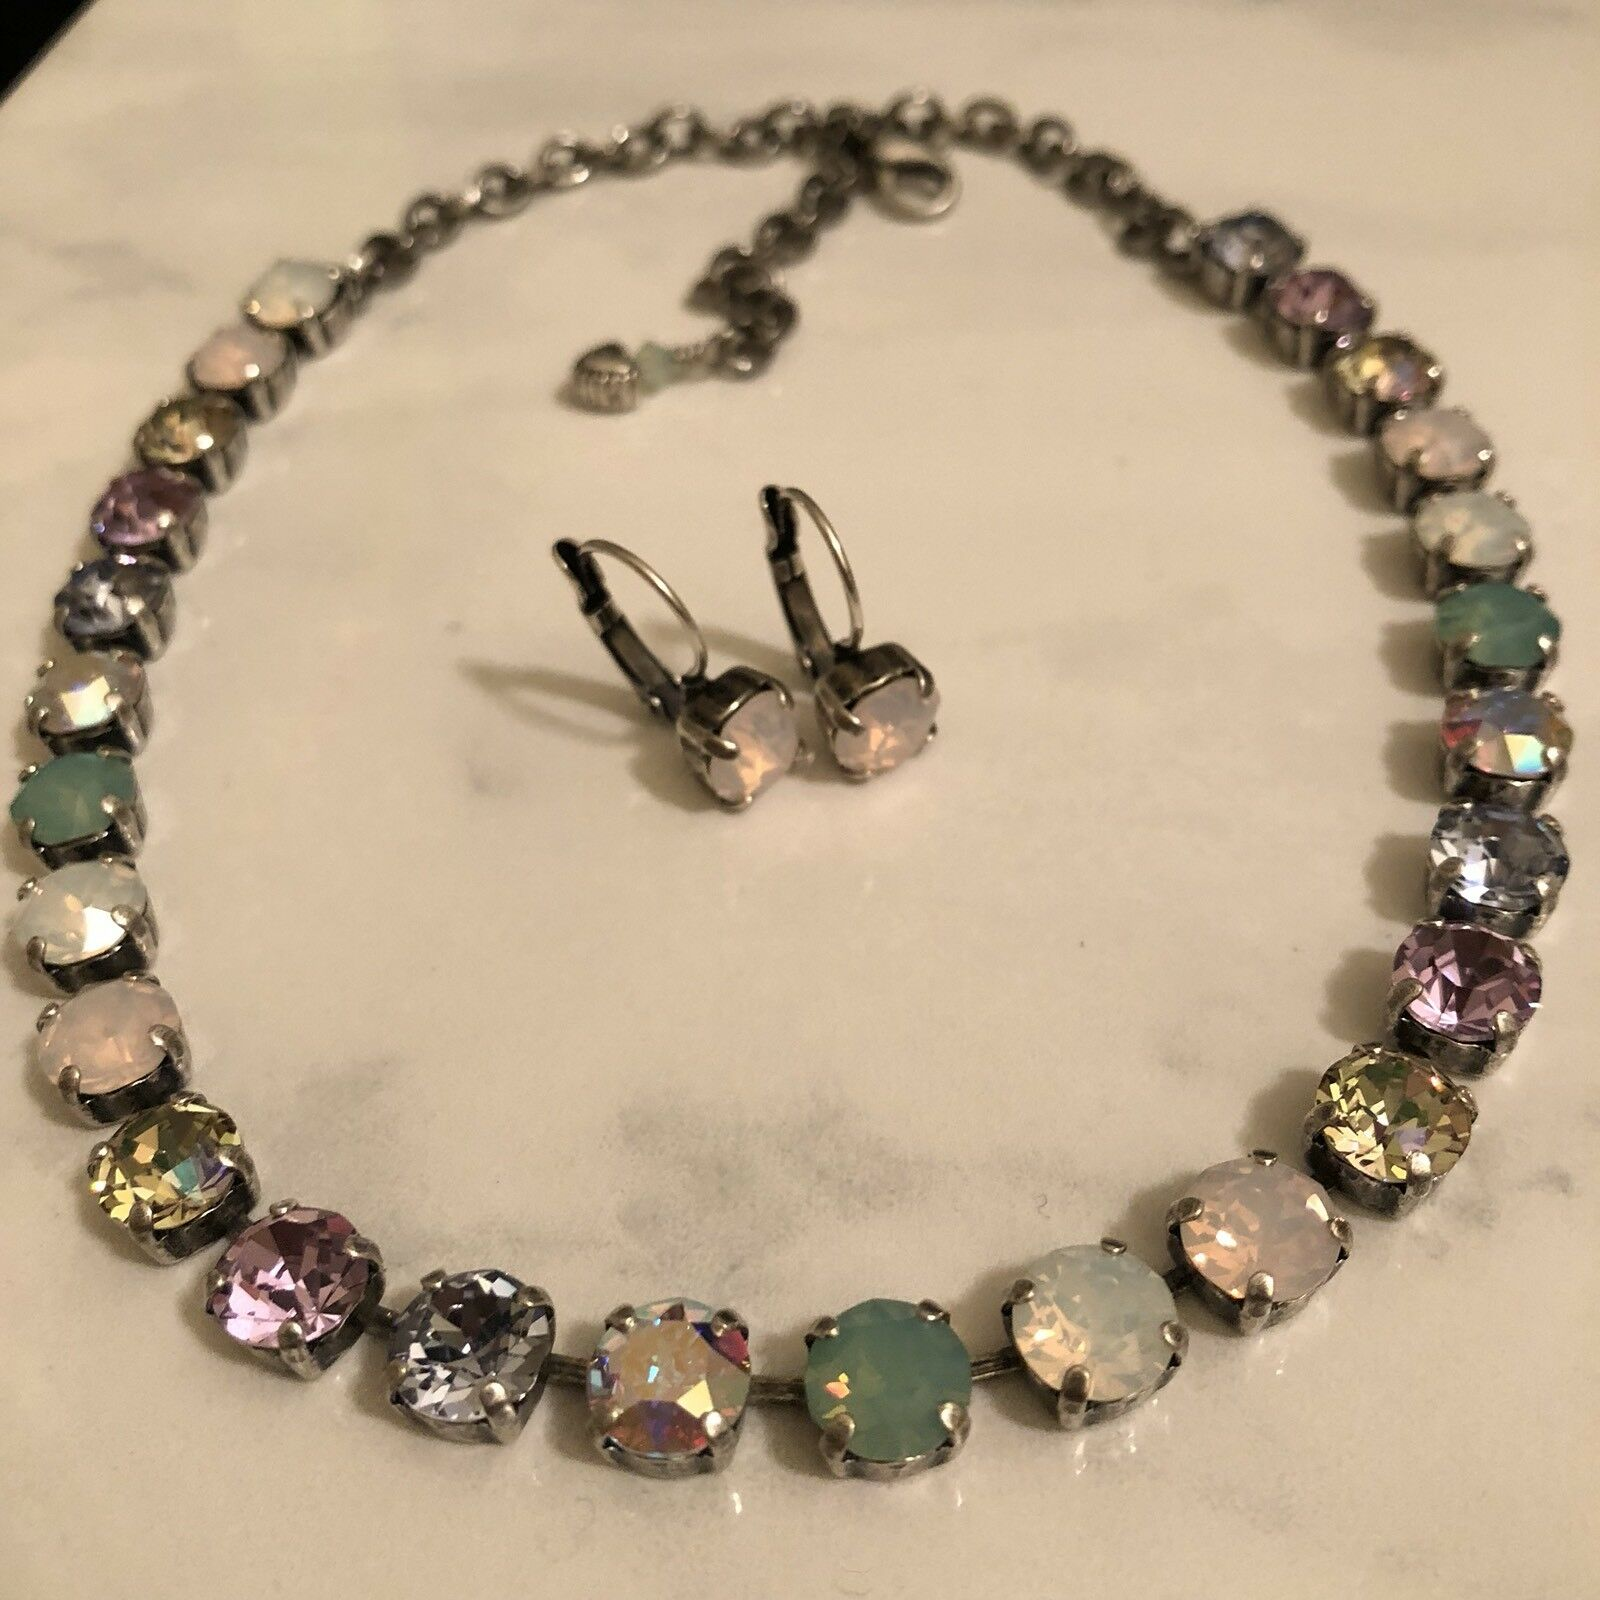 Made w Swarovski 8mm crystals With Pastel colors And Opal Crystal Great colors